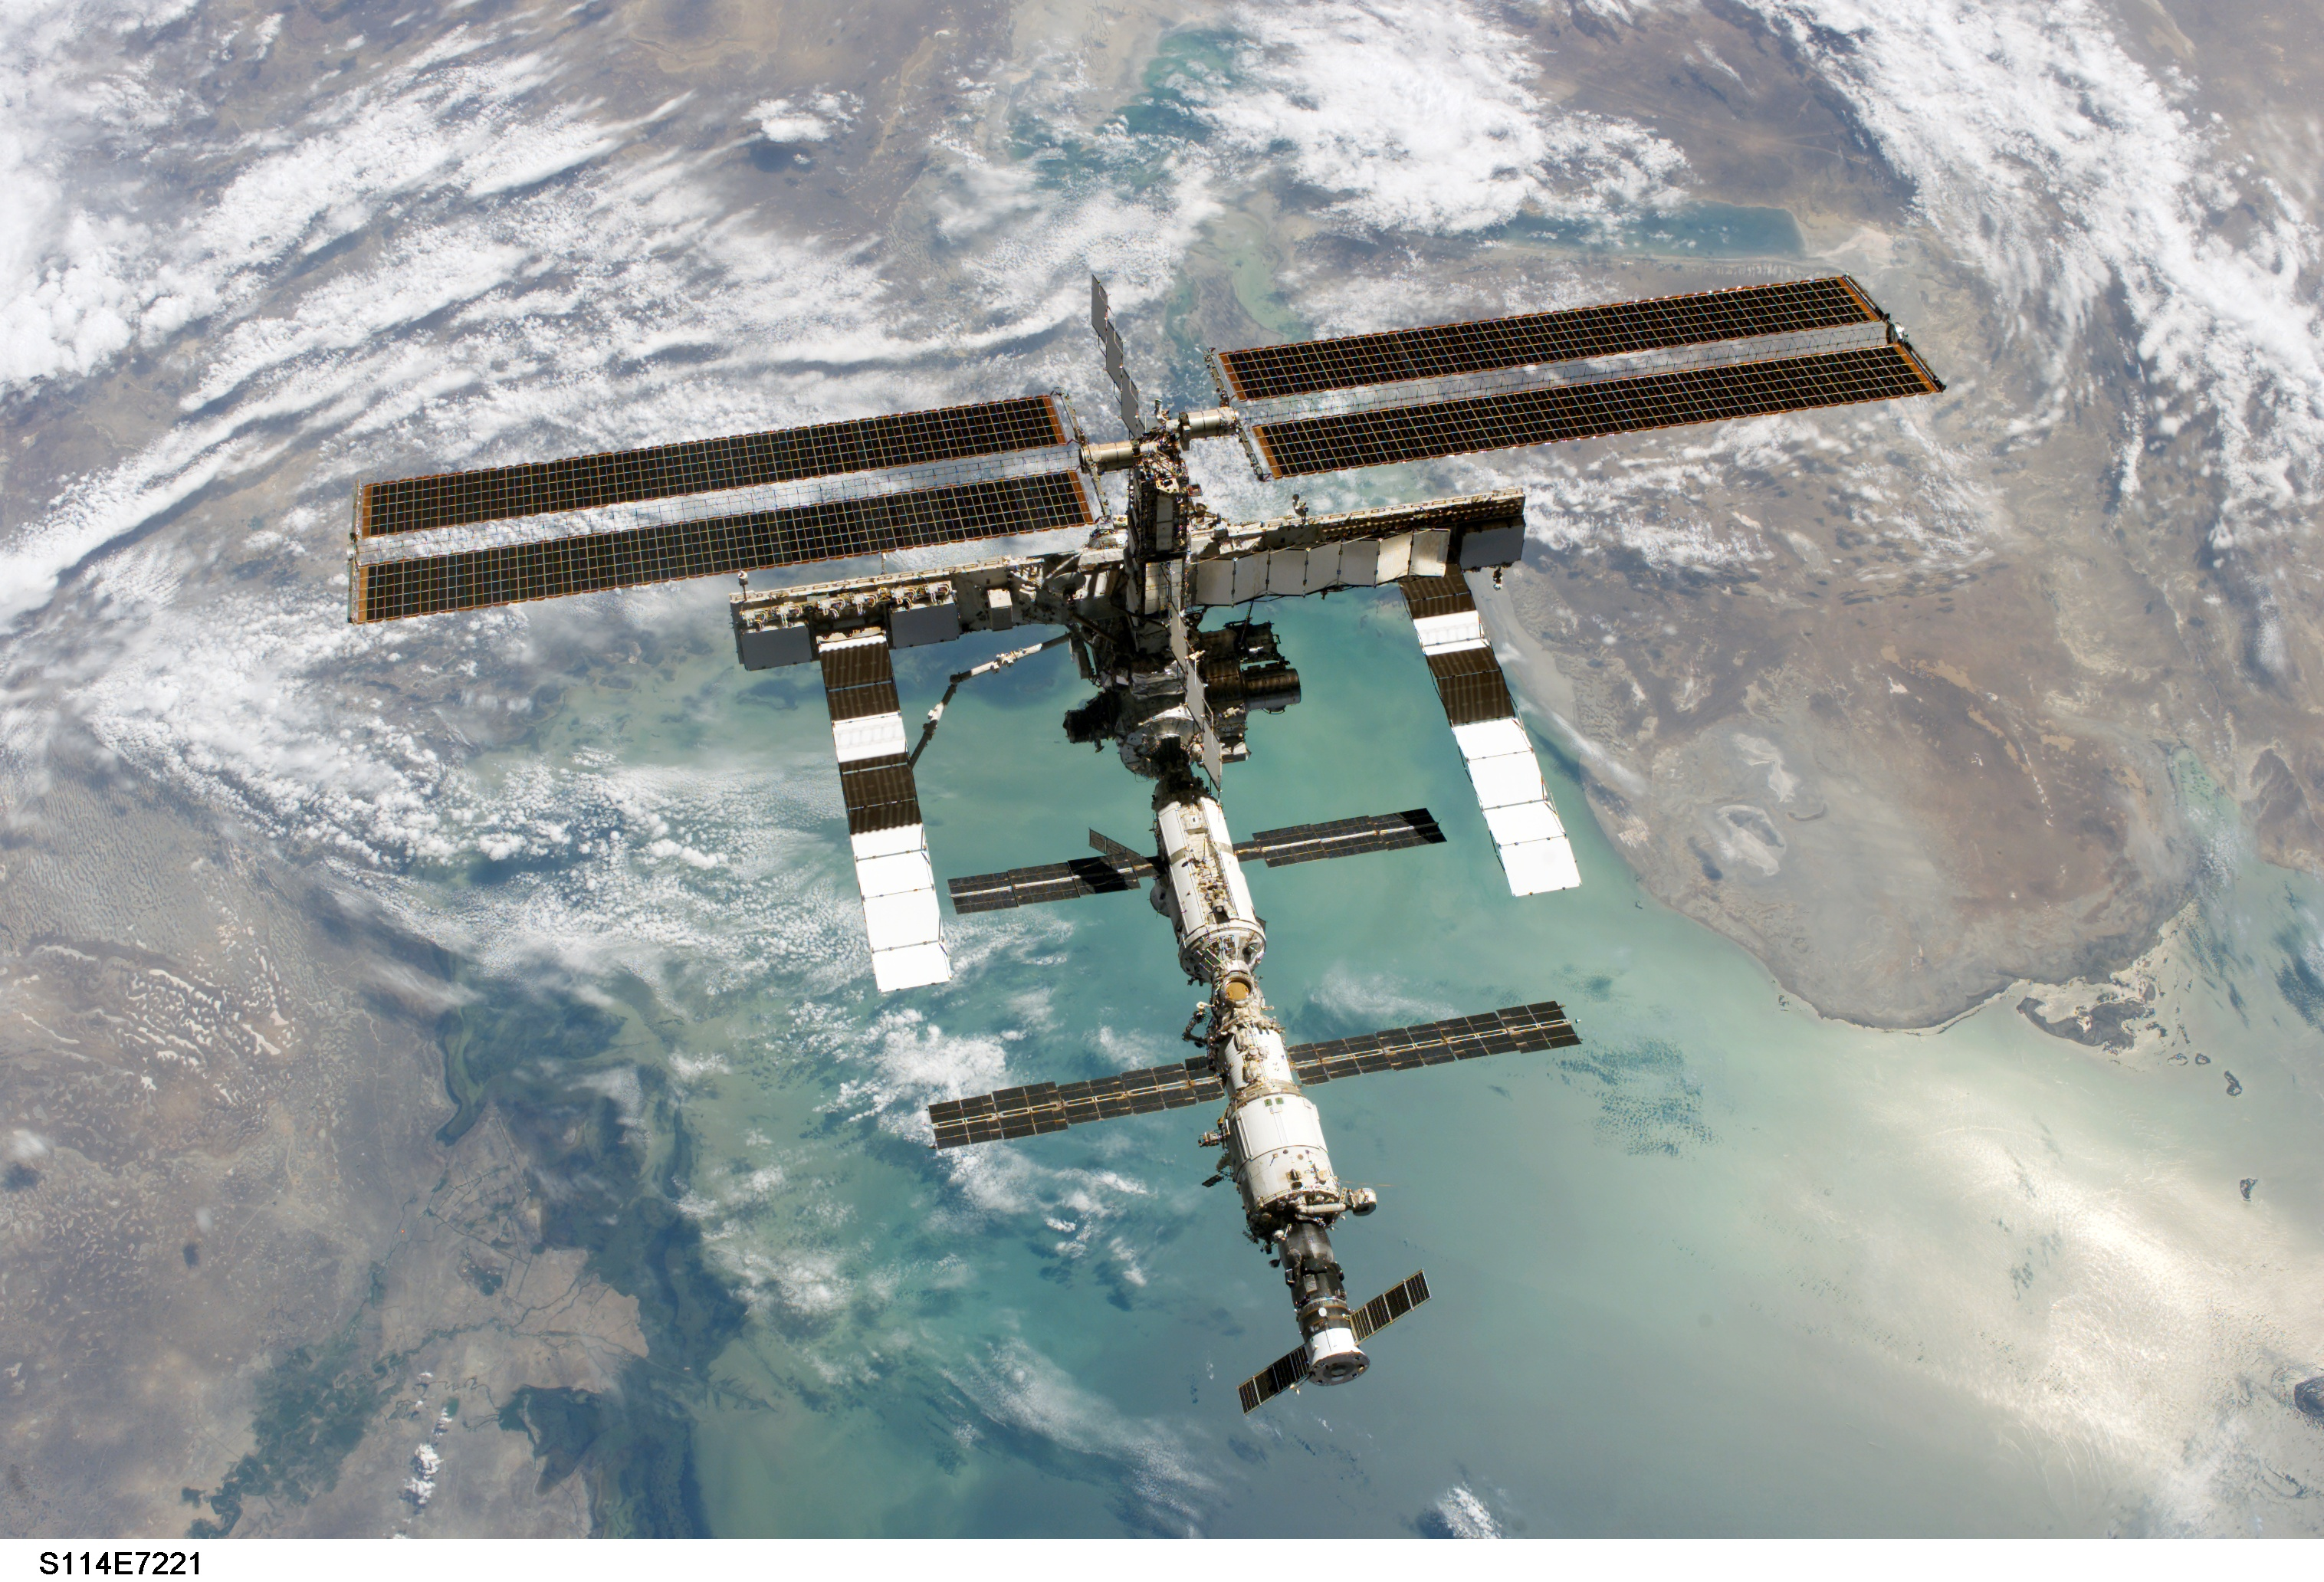 NASA - STS-114 Picture of ISS